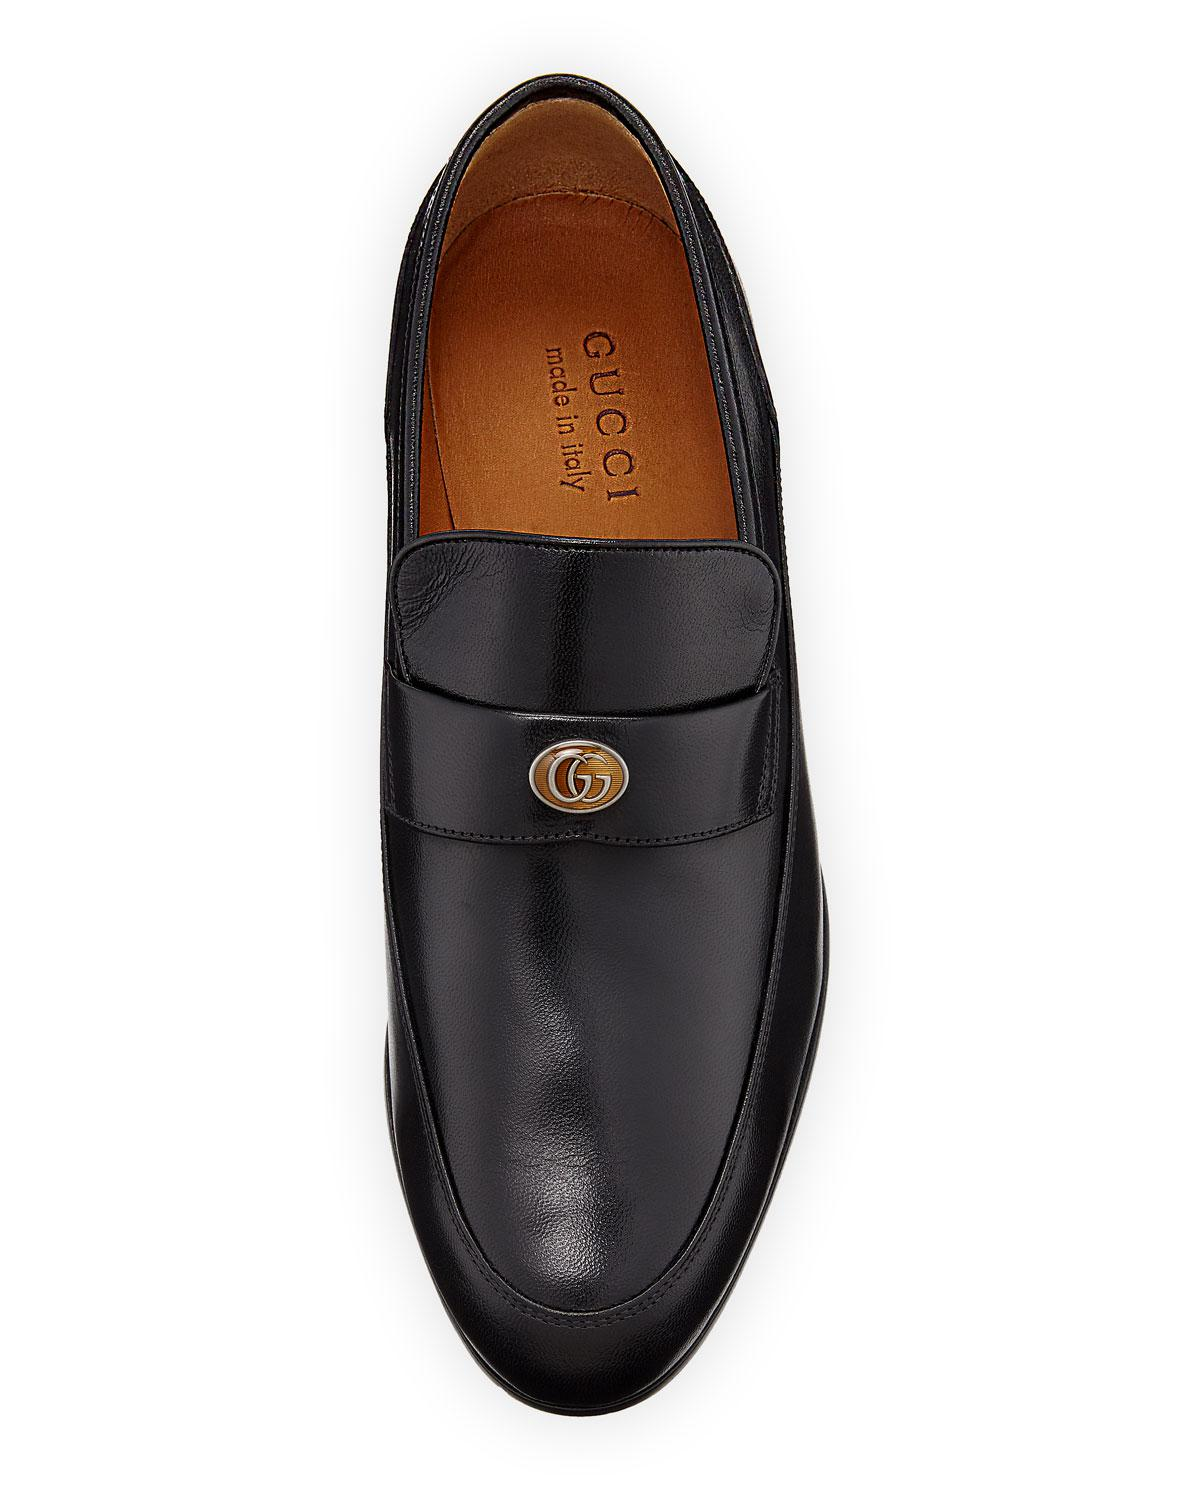 c2a01bf24a7 Lyst - Gucci Men s High Loomis Leather Loafers in Black for Men